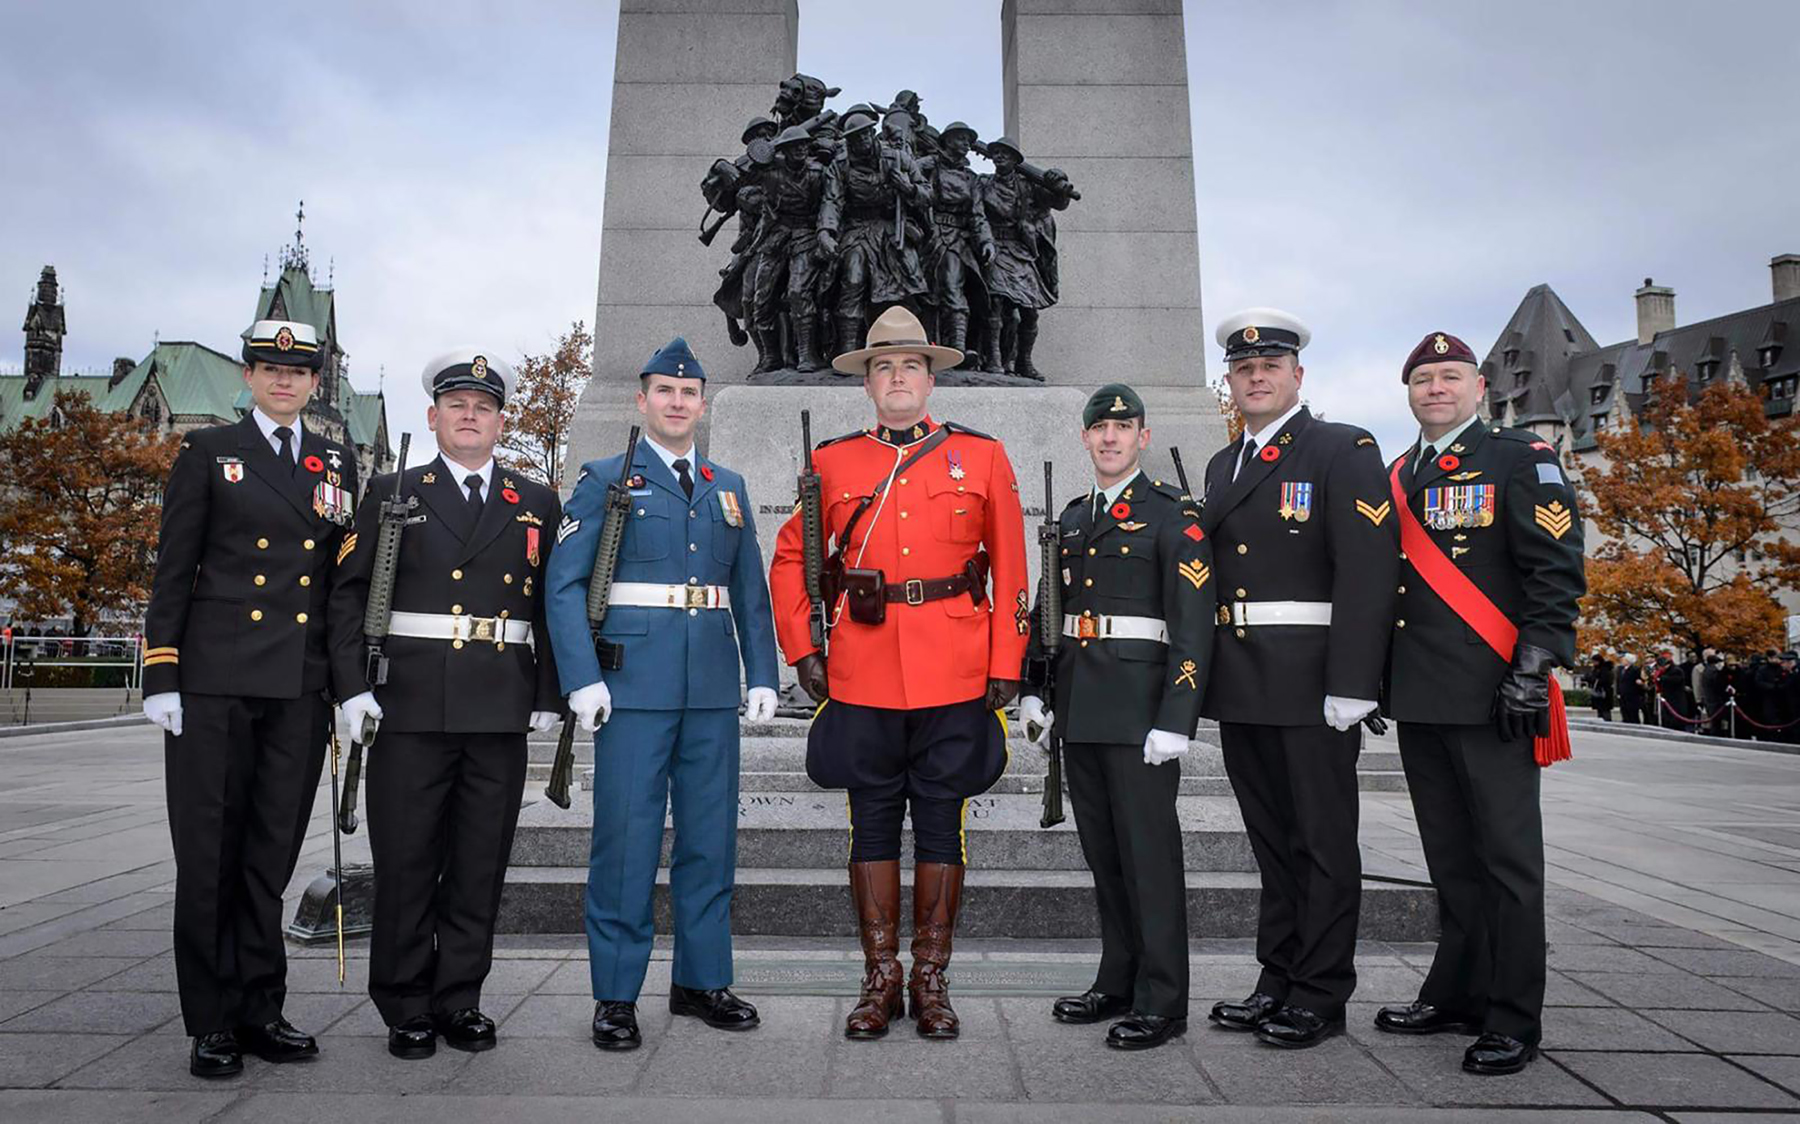 On November 11, 2016, Nursing Officer Lieutenant(N) Ashley Atkins (high readiness critical care nursing officer)(left); Sentry Commander Petty Officer 2nd class Pascal Desjardins (senior sonar operator); Royal Canadian Air Force Sentry Master Corporal George Arsenault (aerospace control instructor); Royal Canadian Mounted Police Sentry Corporal Curtis Barrett (police explosives technician); Canadian Army Sentry Master Bombardier Guillaume Lemay (observation post second-in-command); Royal Canadian Navy Sentry Leading Seaman Kyle Ruttan (supply technician); and Special Guest of the Chief of the Defence Staff Sentry Sergeant Lorne Ford (unit emplaning officer) gather for a photograph at the National War Memorial in Ottawa, Ontario, before the Remembrance Day Ceremony. PHOTO: Corporal Michael MacIsaac